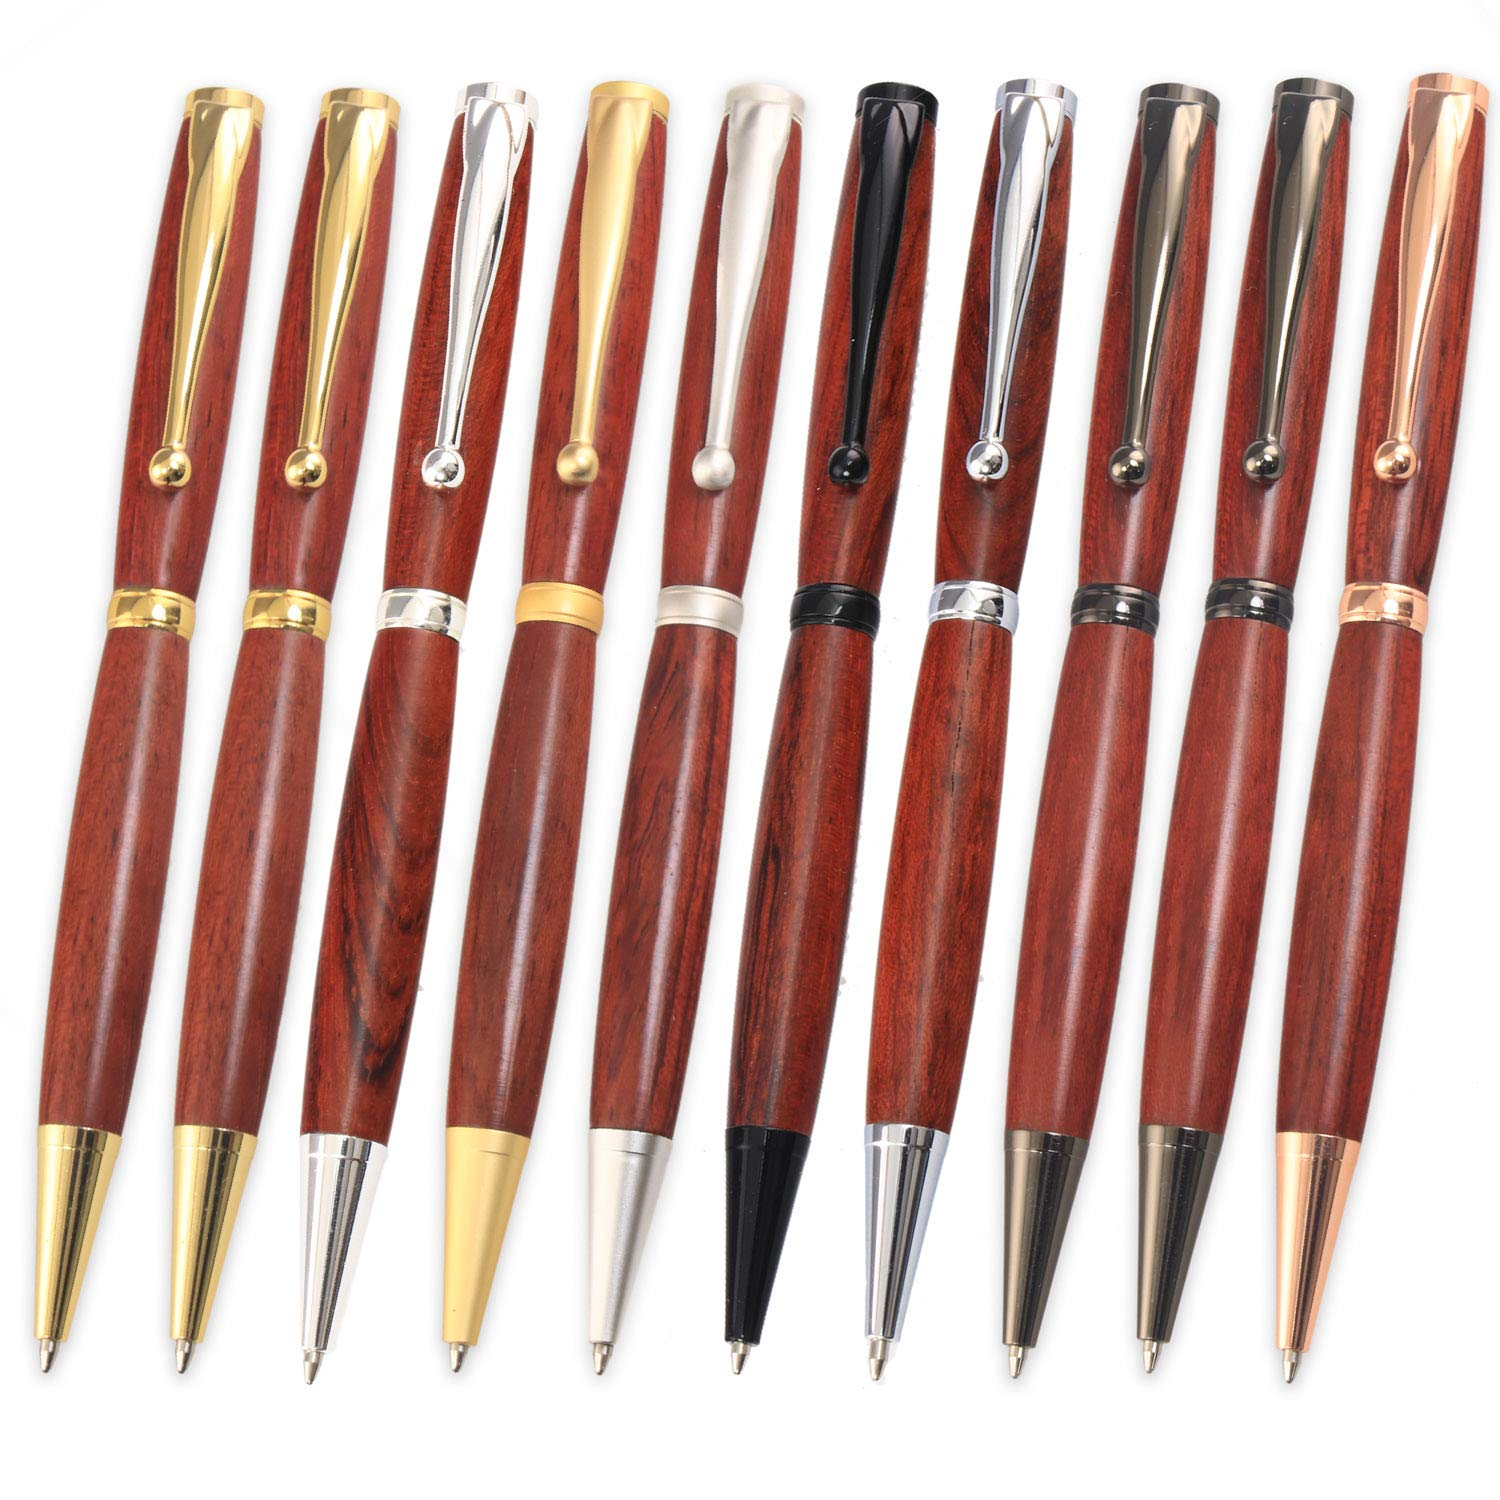 Legacy Woodturning Fancy Pen Kit 10 Piece Variety Pack by Legacy Woodturning